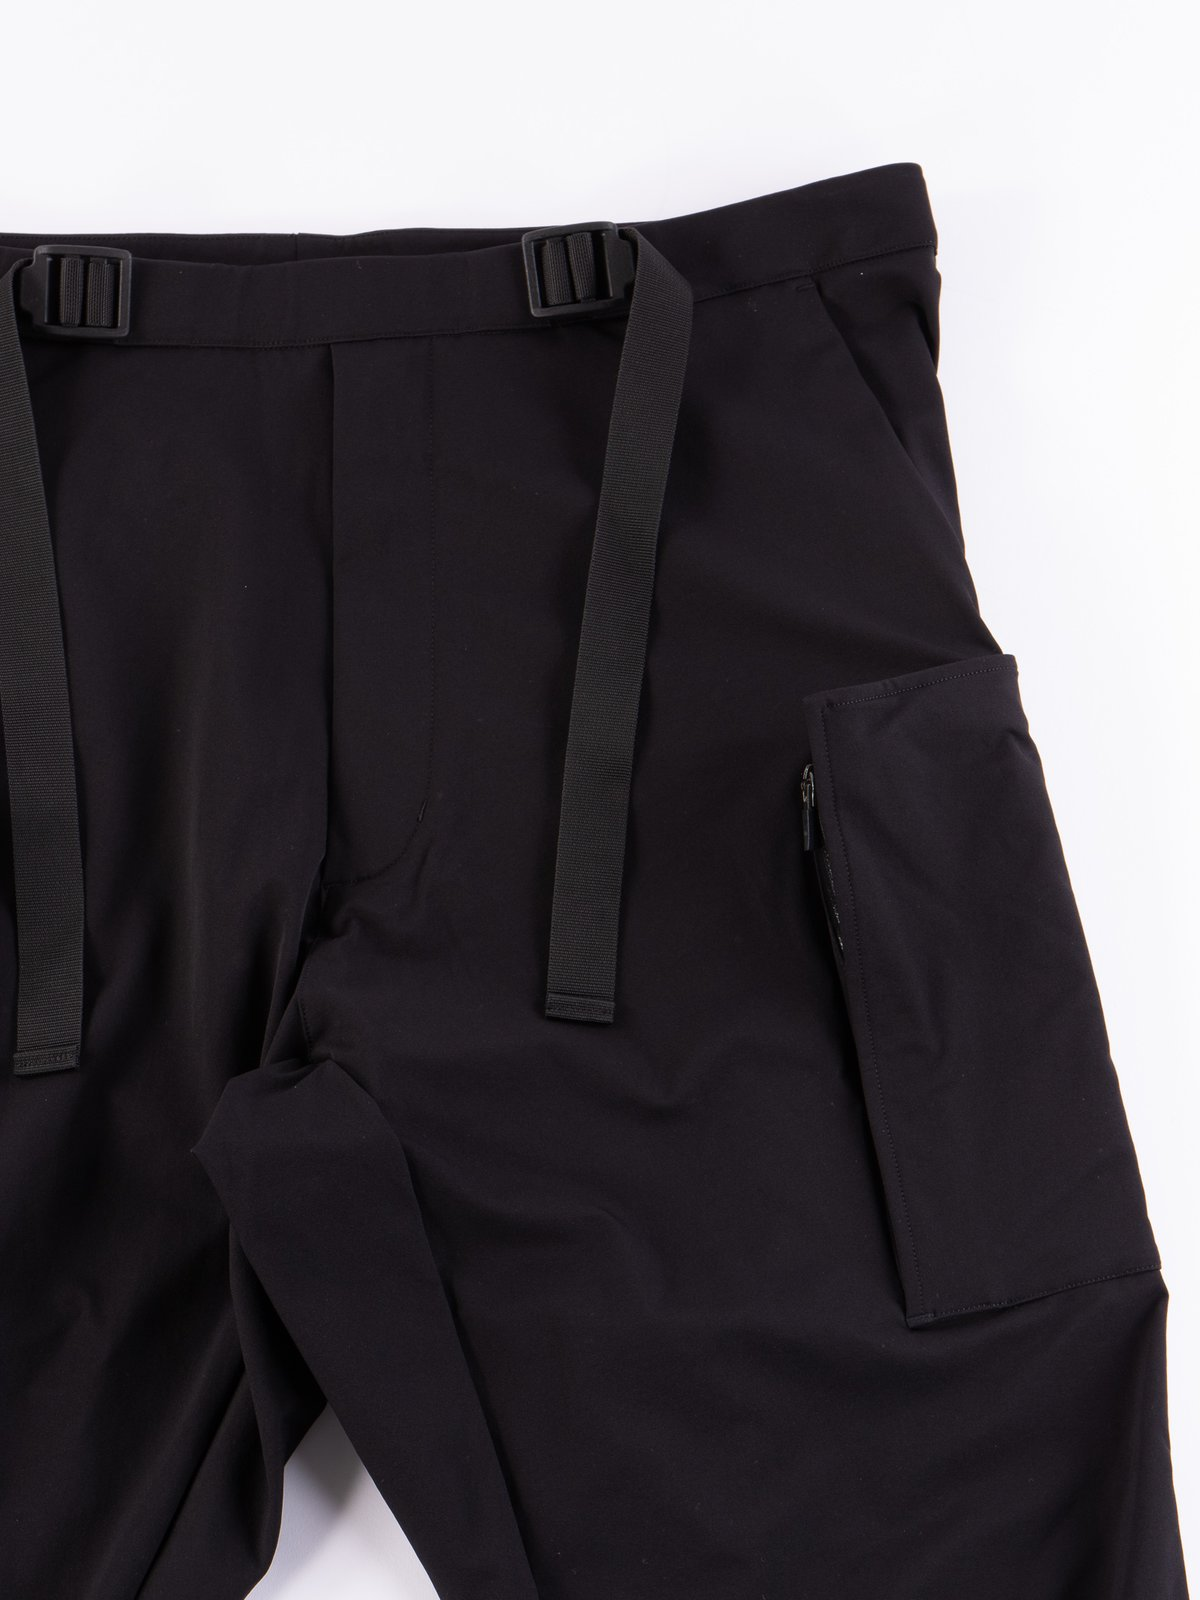 P31A–DS Black Schoeller Dryskin Drawcord Cargo Trouser - Image 2